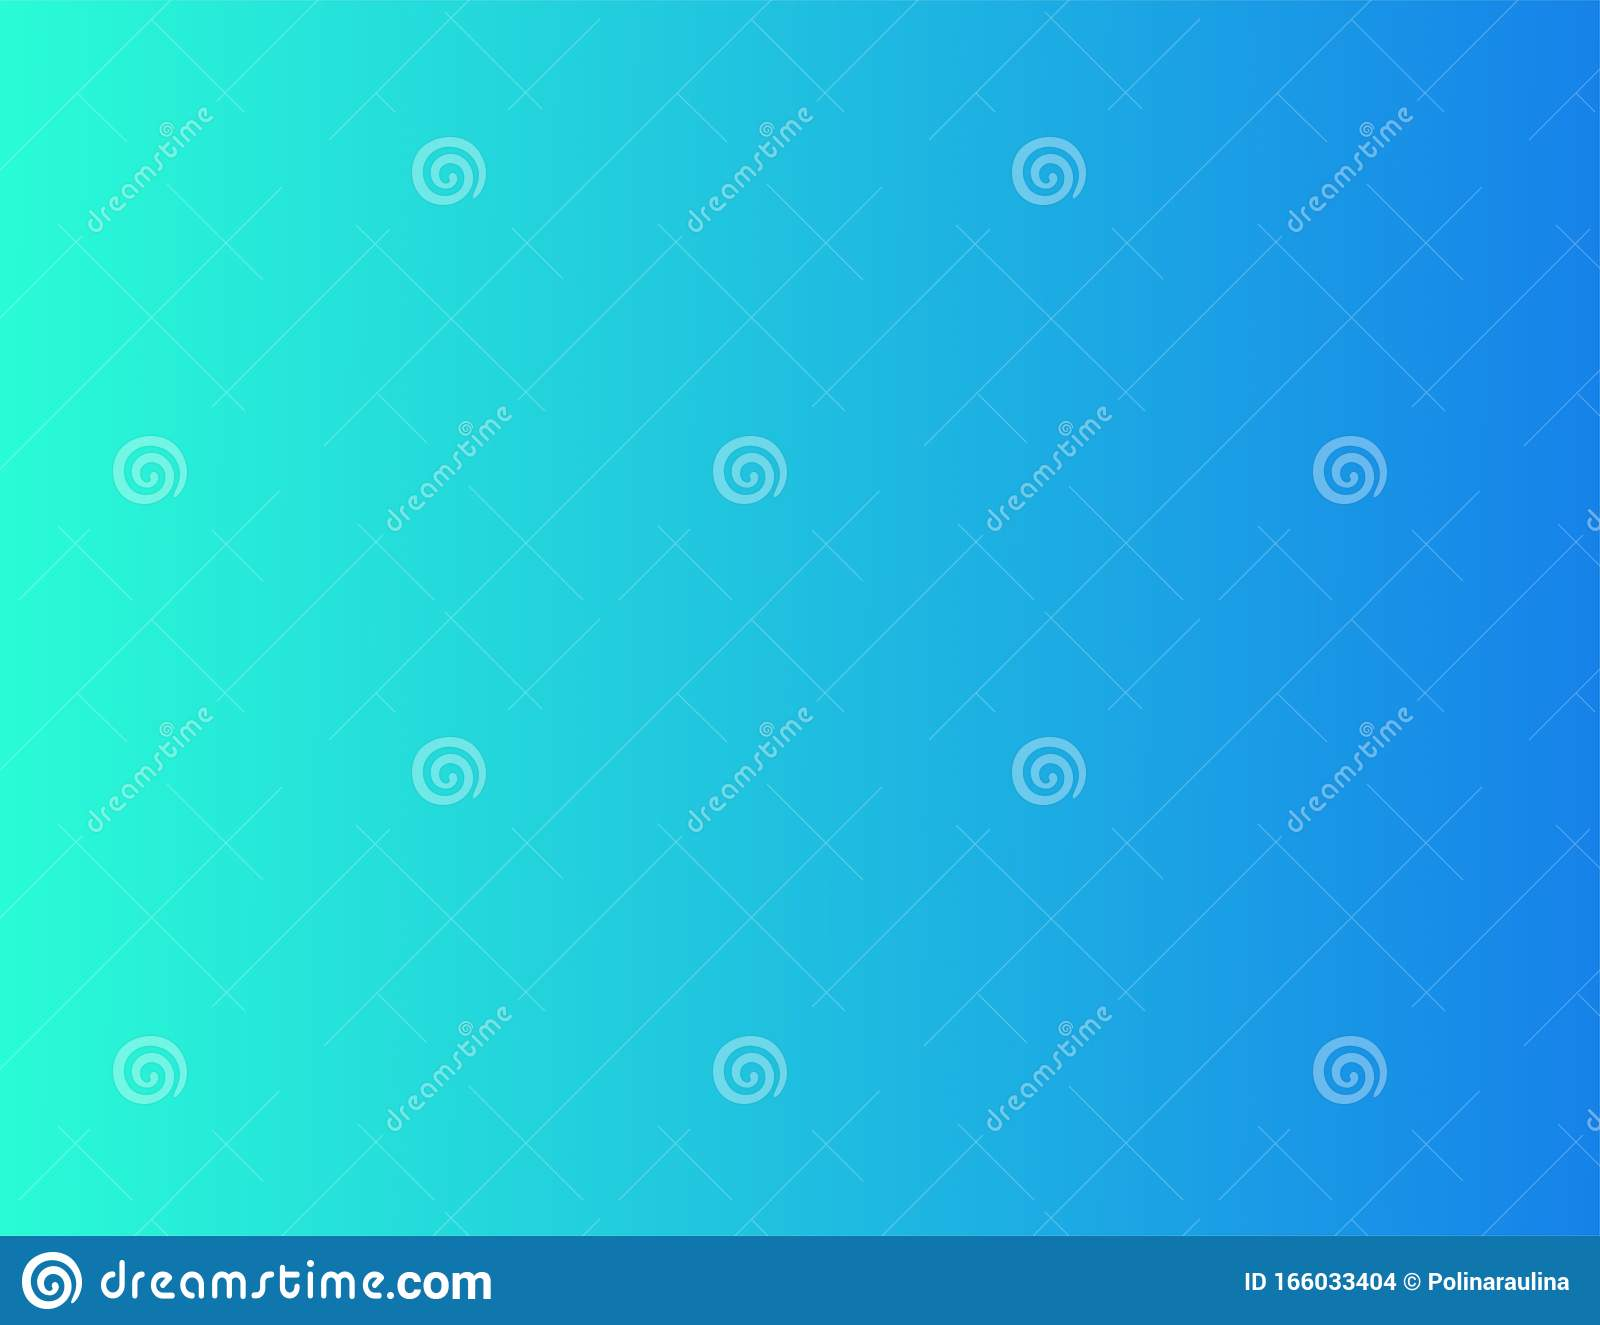 Abstract Light Blue Gradient Background Stock Vector